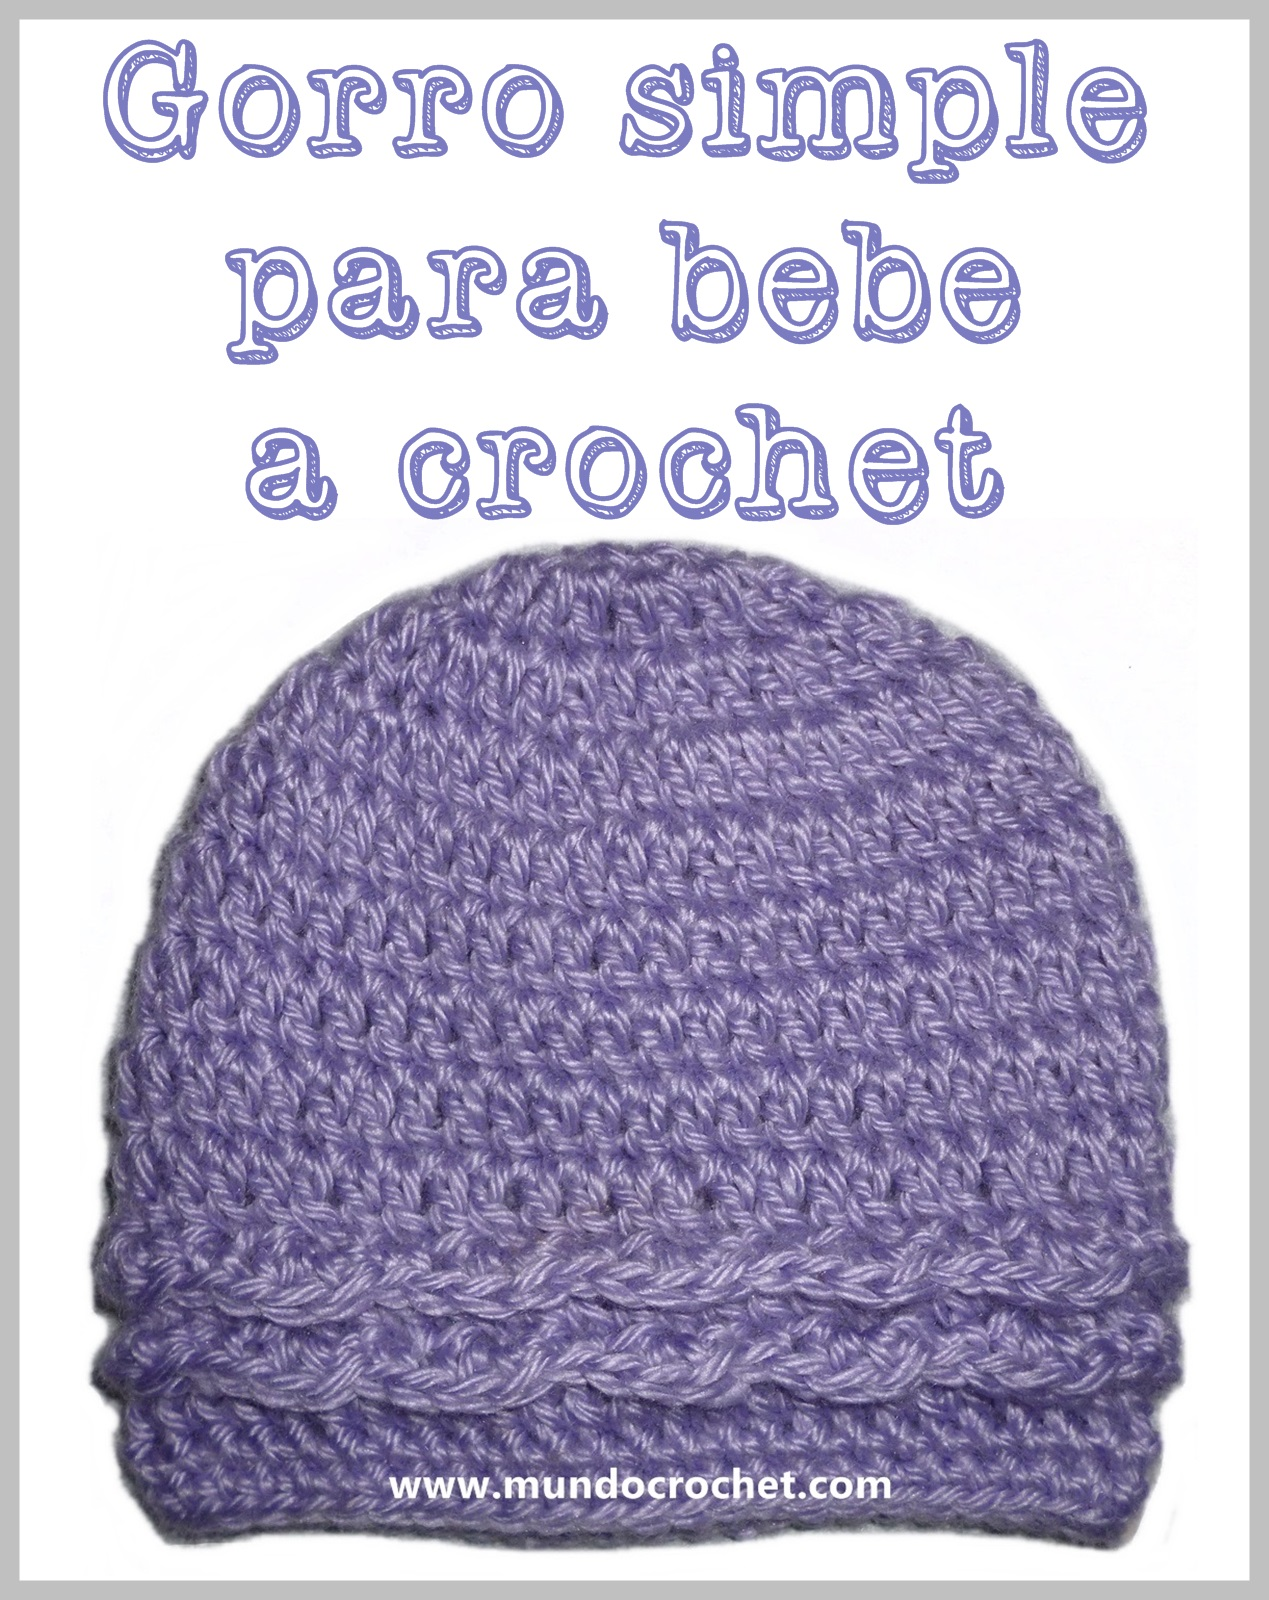 Patron-gorro-simple-para-bebe-a-crochet-o-ganchillo00.jpg